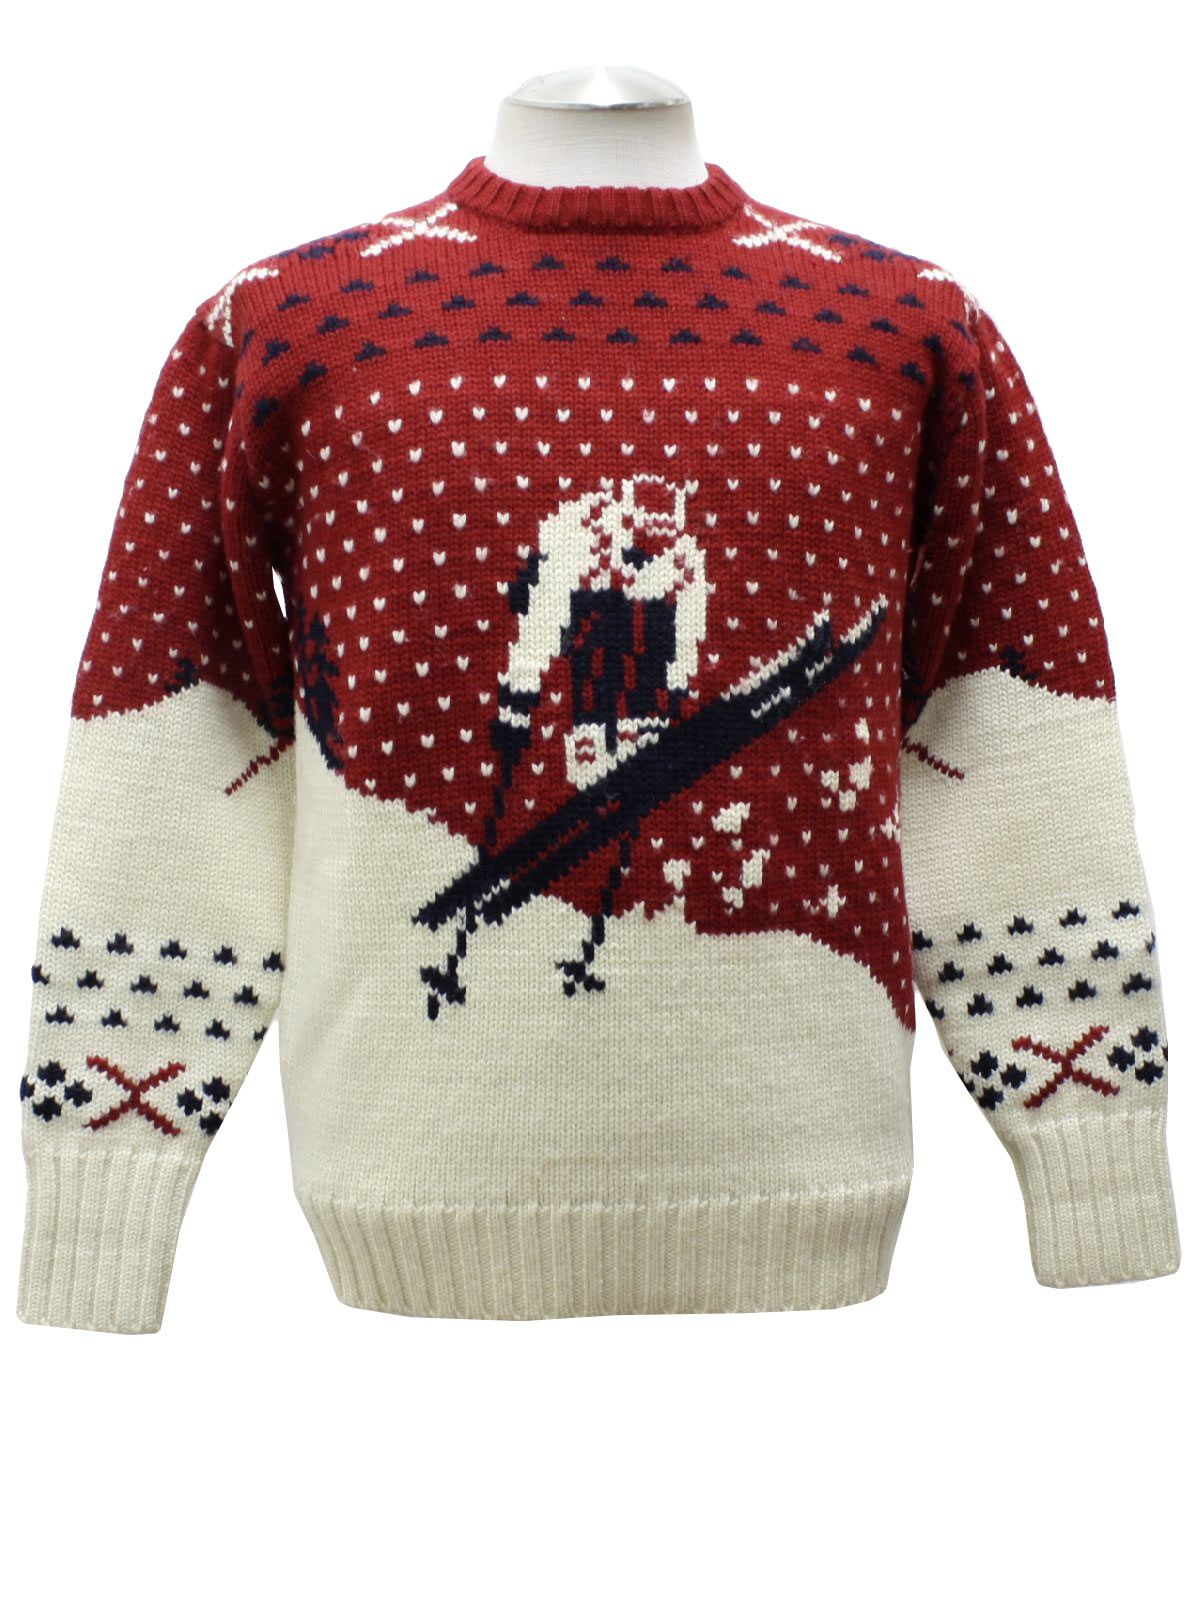 d2fd0a0e1 80s vintage -Polo by Ralph Lauren- Mens red white and black pullover style  wool ski sweater with old school intarsia knit ski jumper